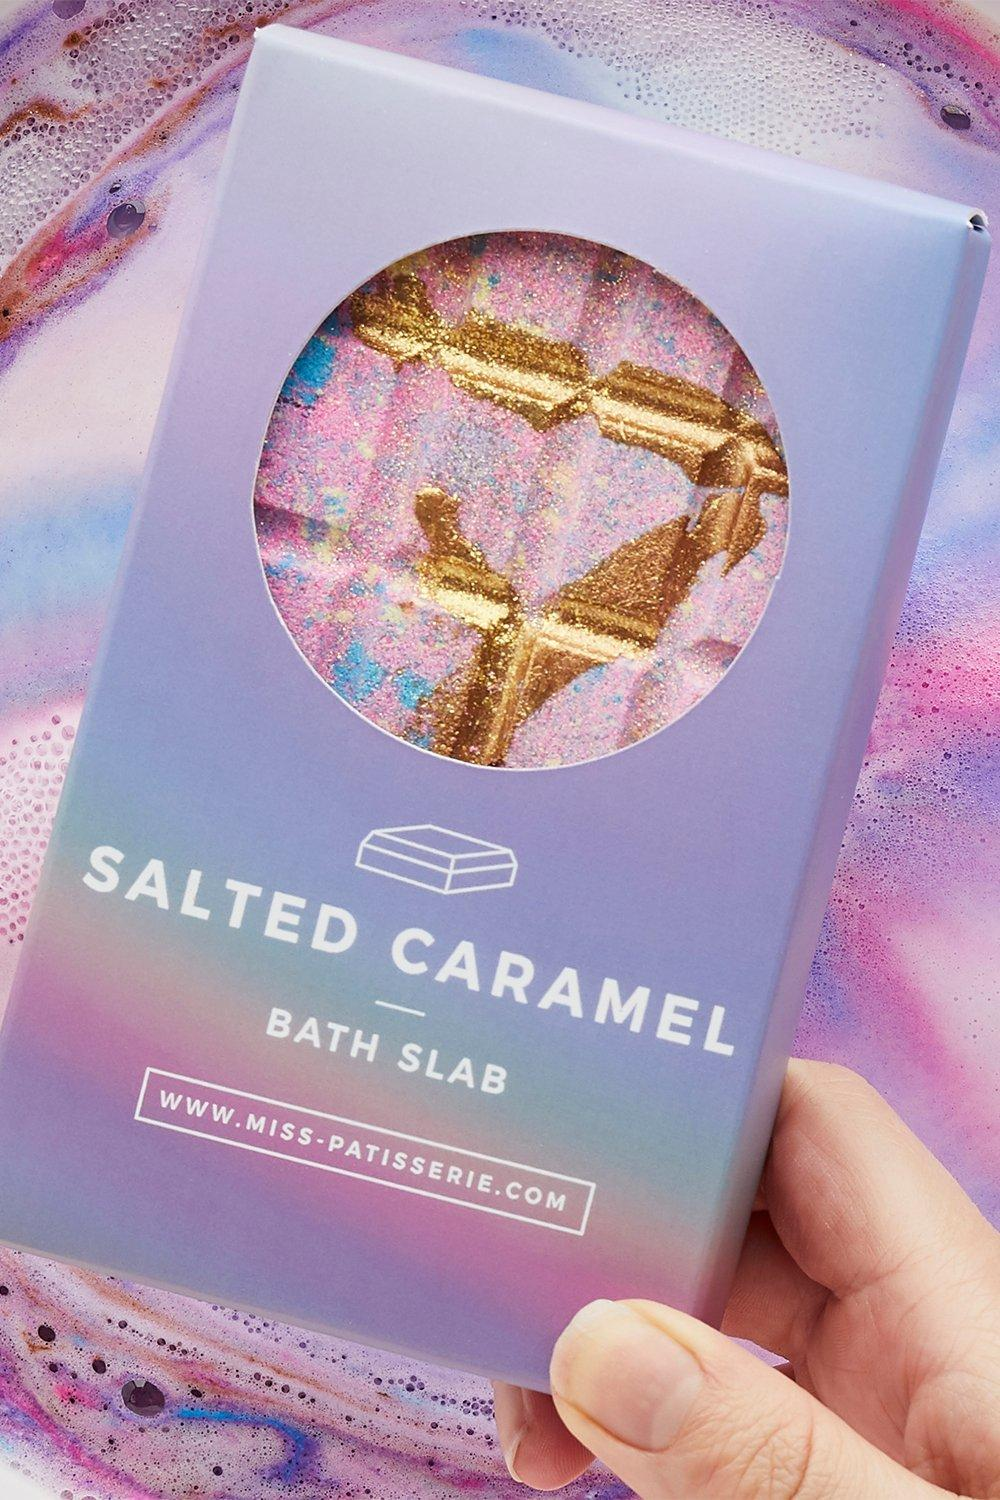 womens miss patisserie salted caramel bath slab - pink - one size